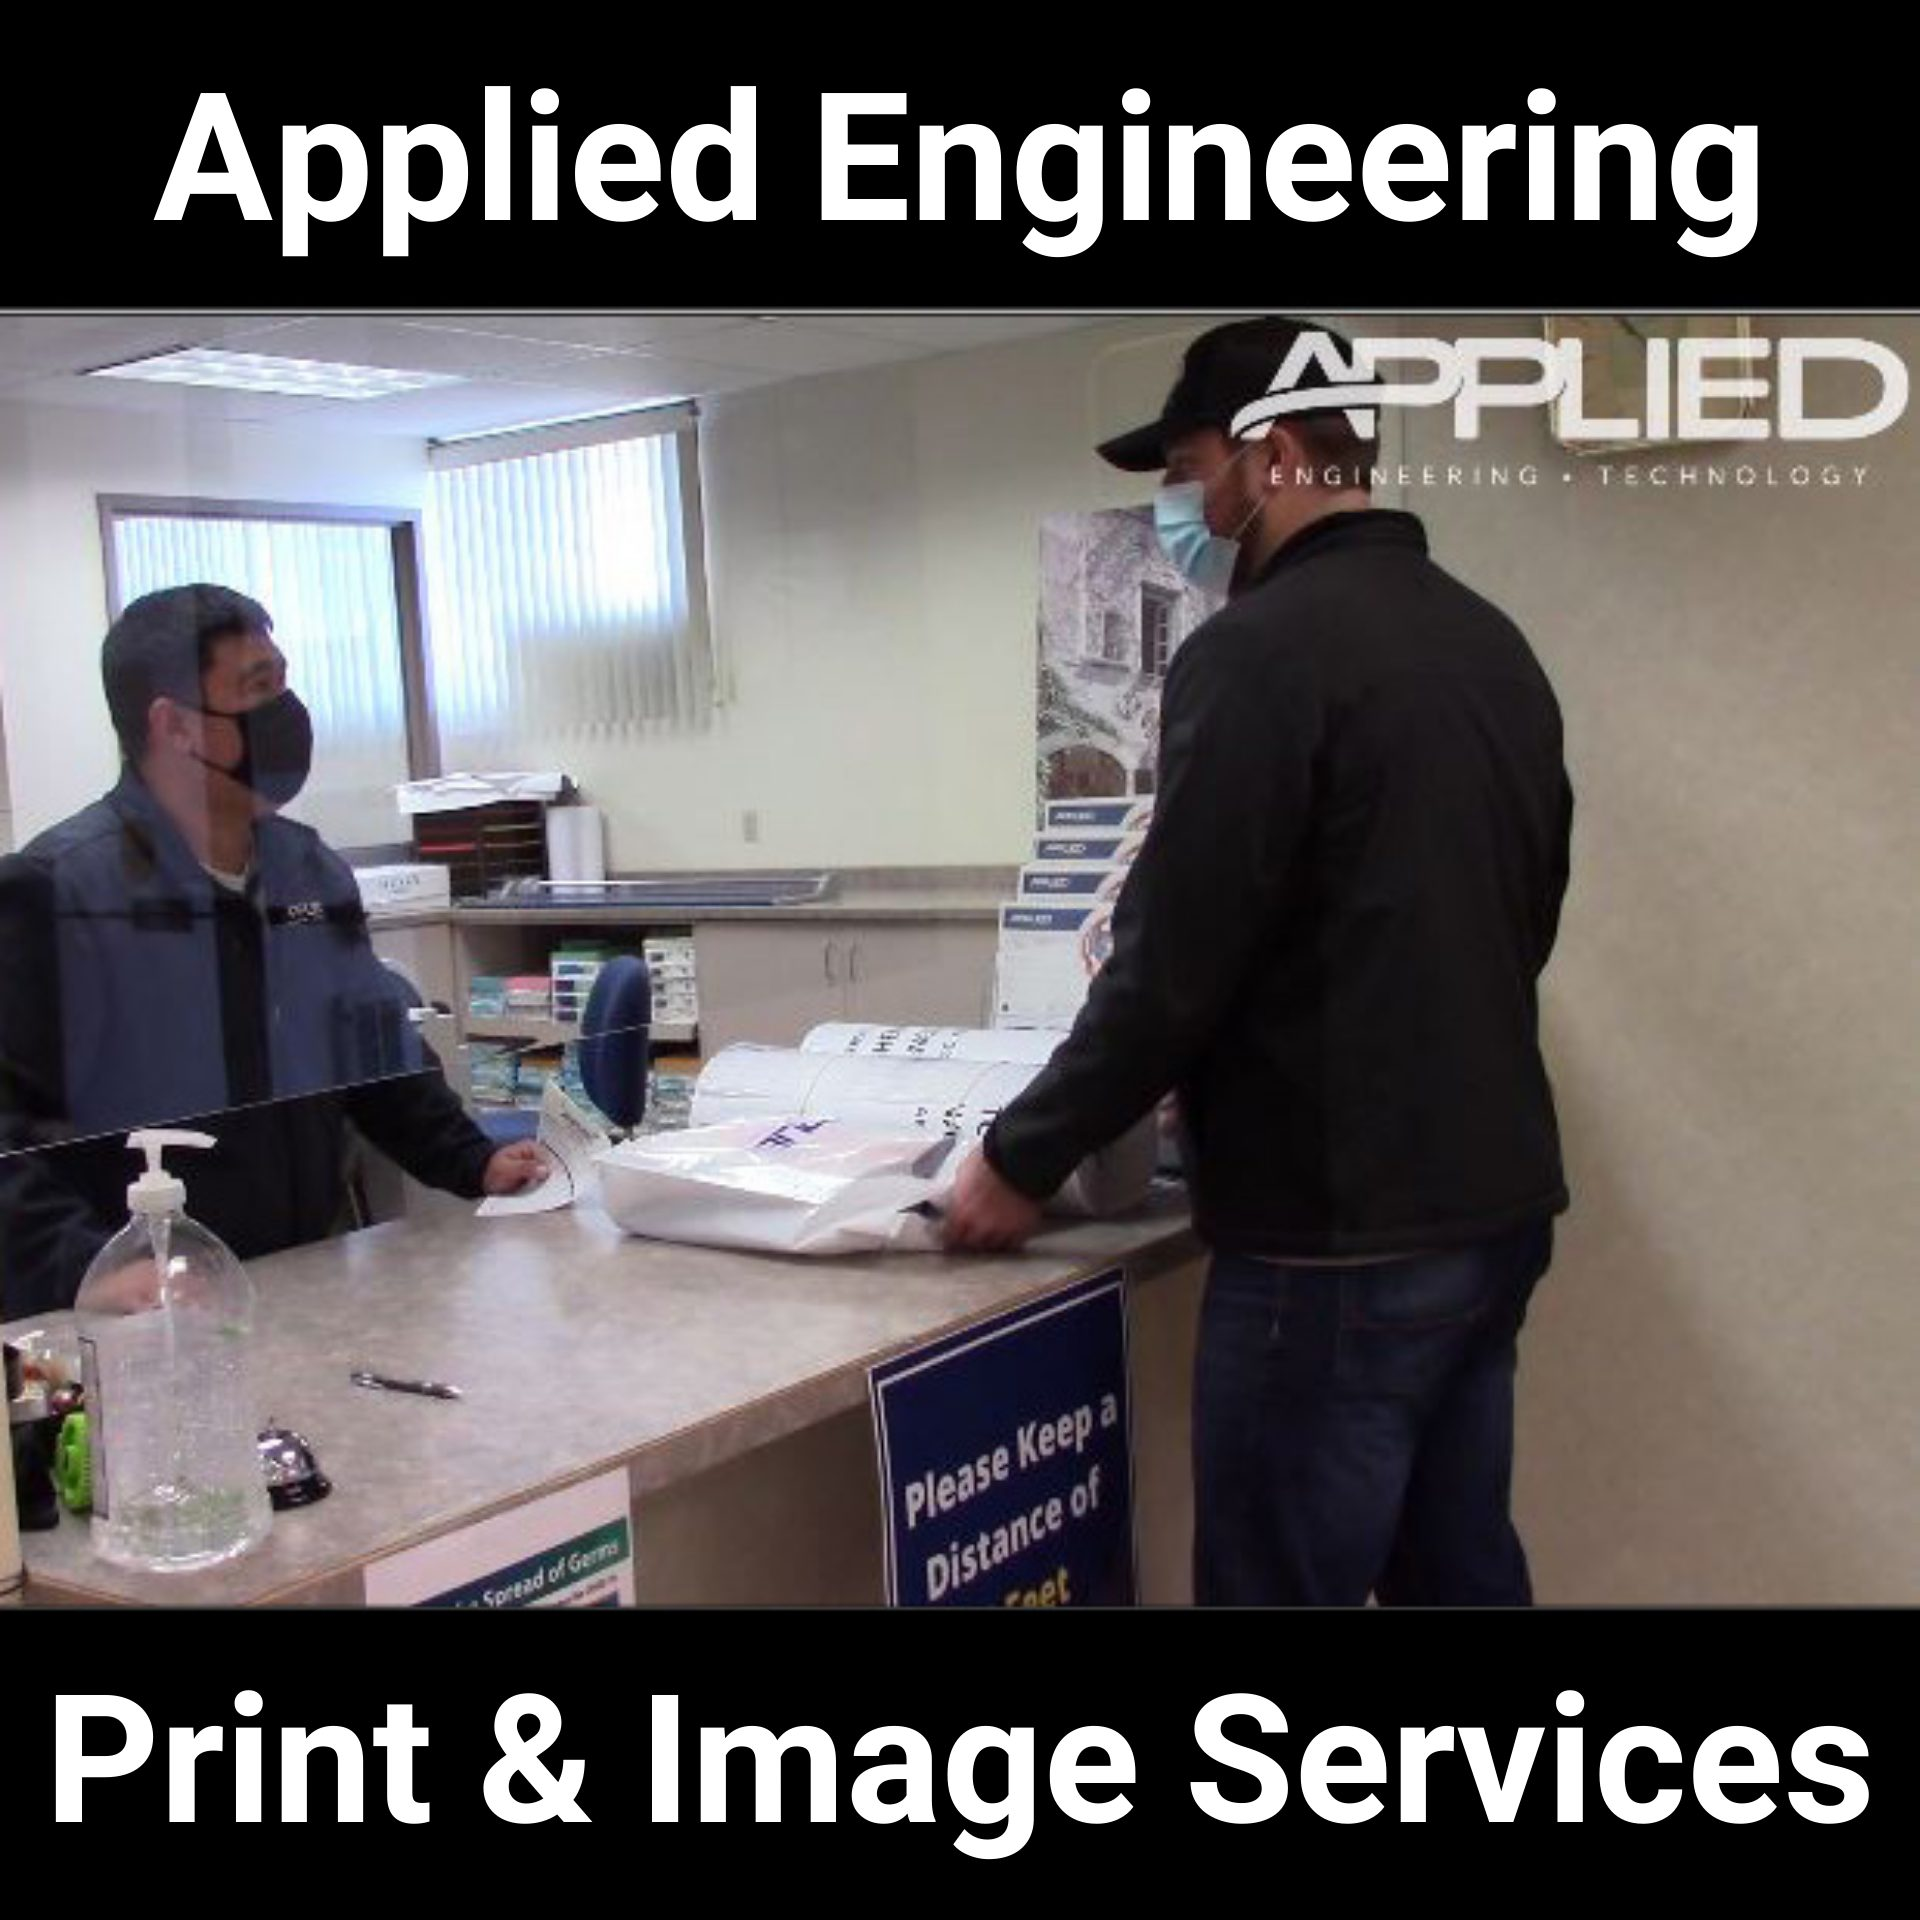 Applied Engineering Print and Image Services